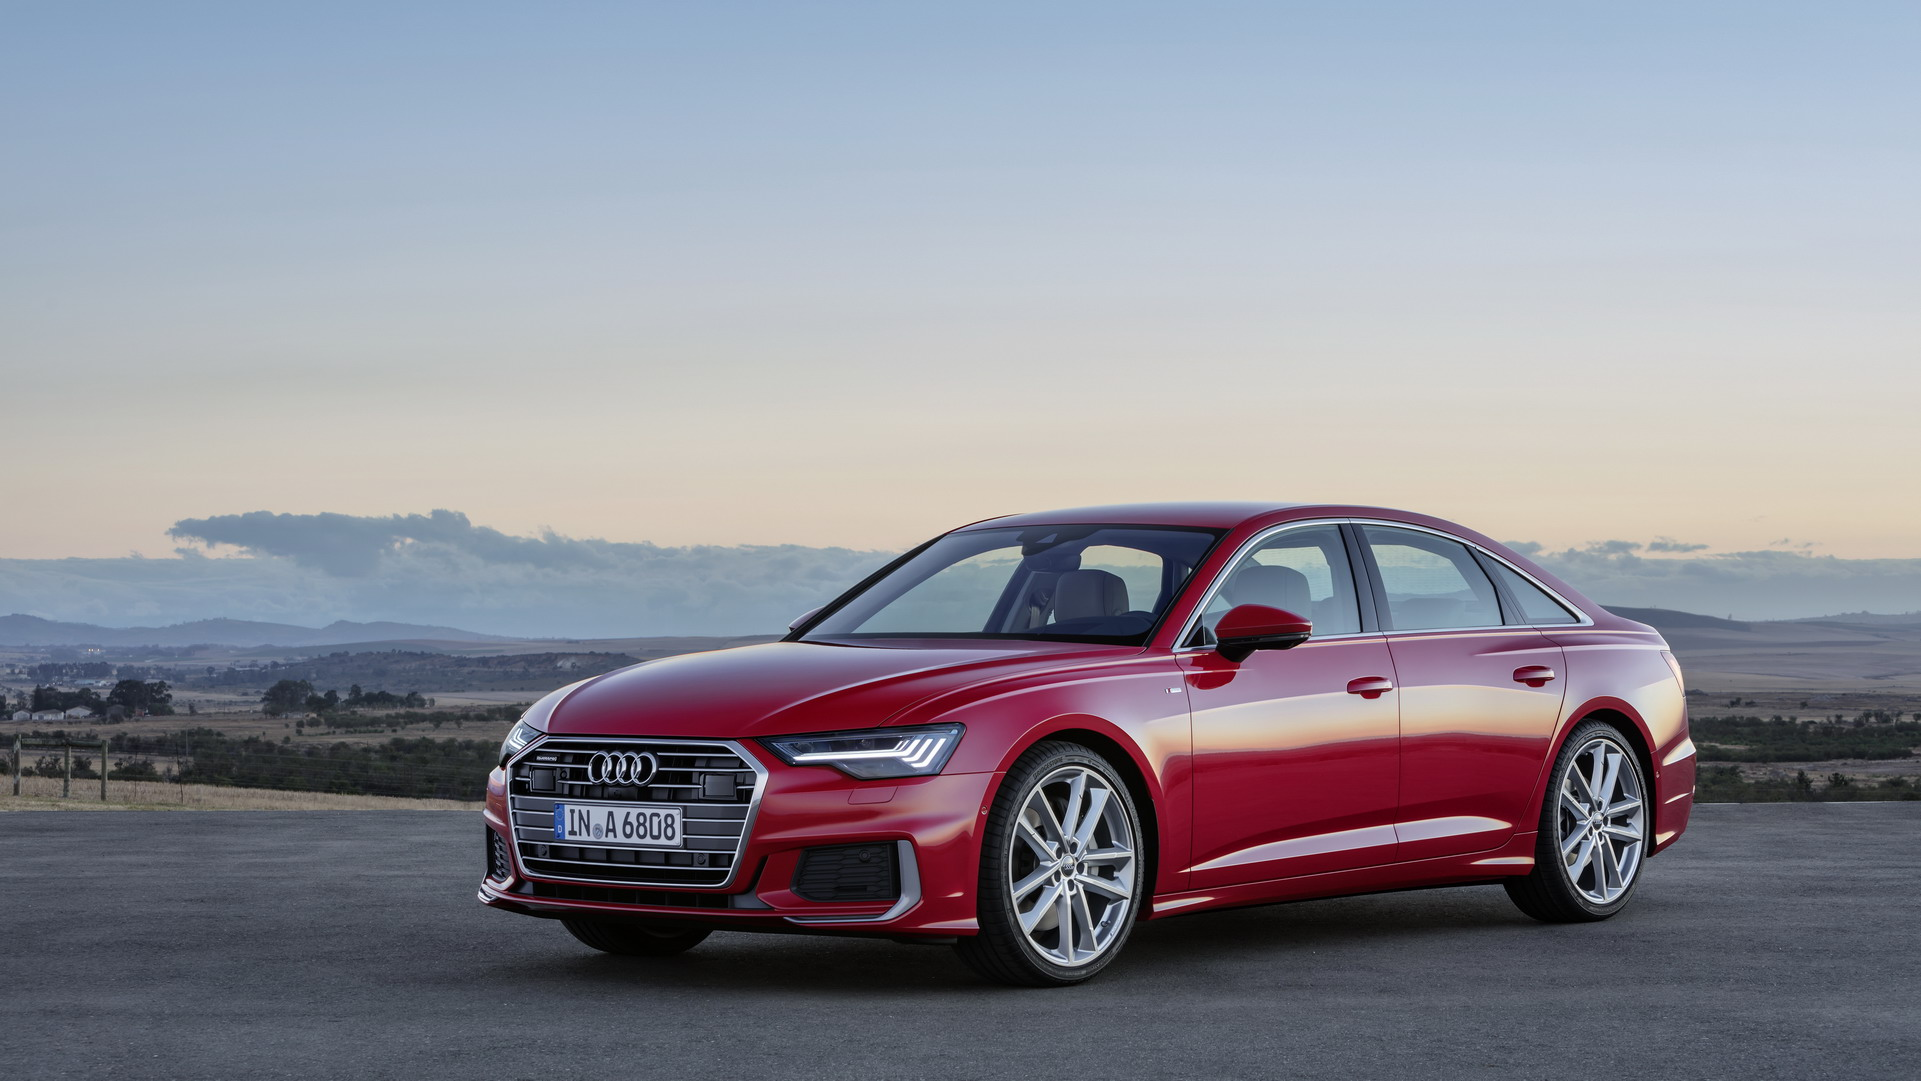 Audi A6 Quattro 2019 Audi A6 Revealed With Mild Hybrid V6 Engines Quattro Comes